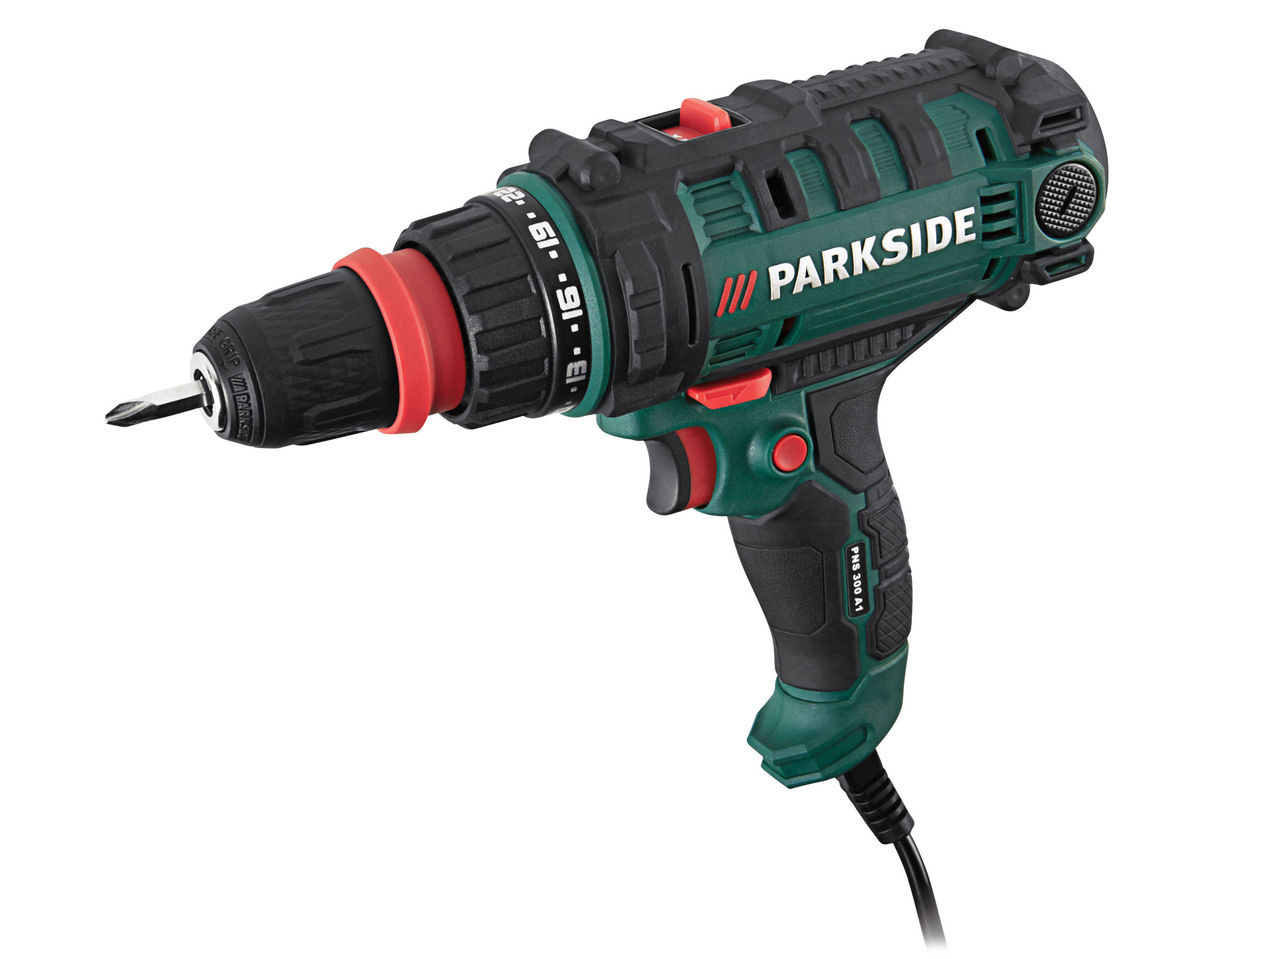 2-Speed Corded Power Drill